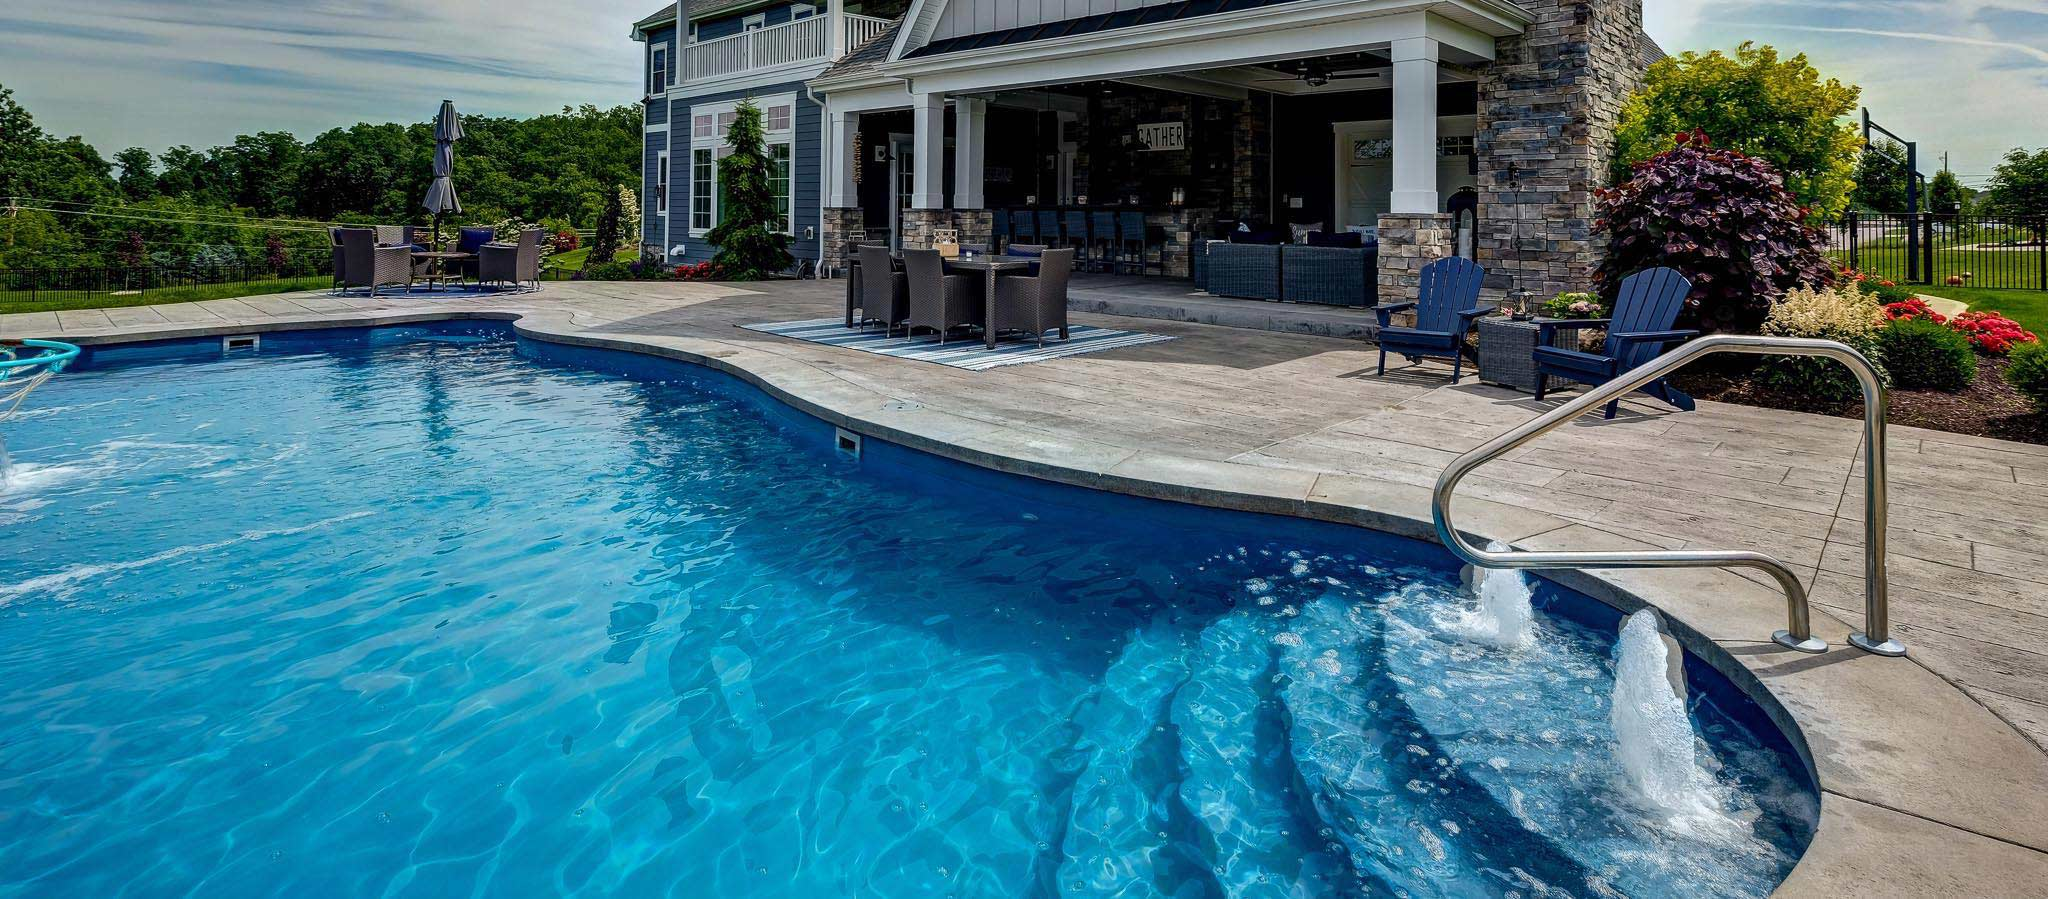 Fiberglass Swimming Pools - Latham Pools